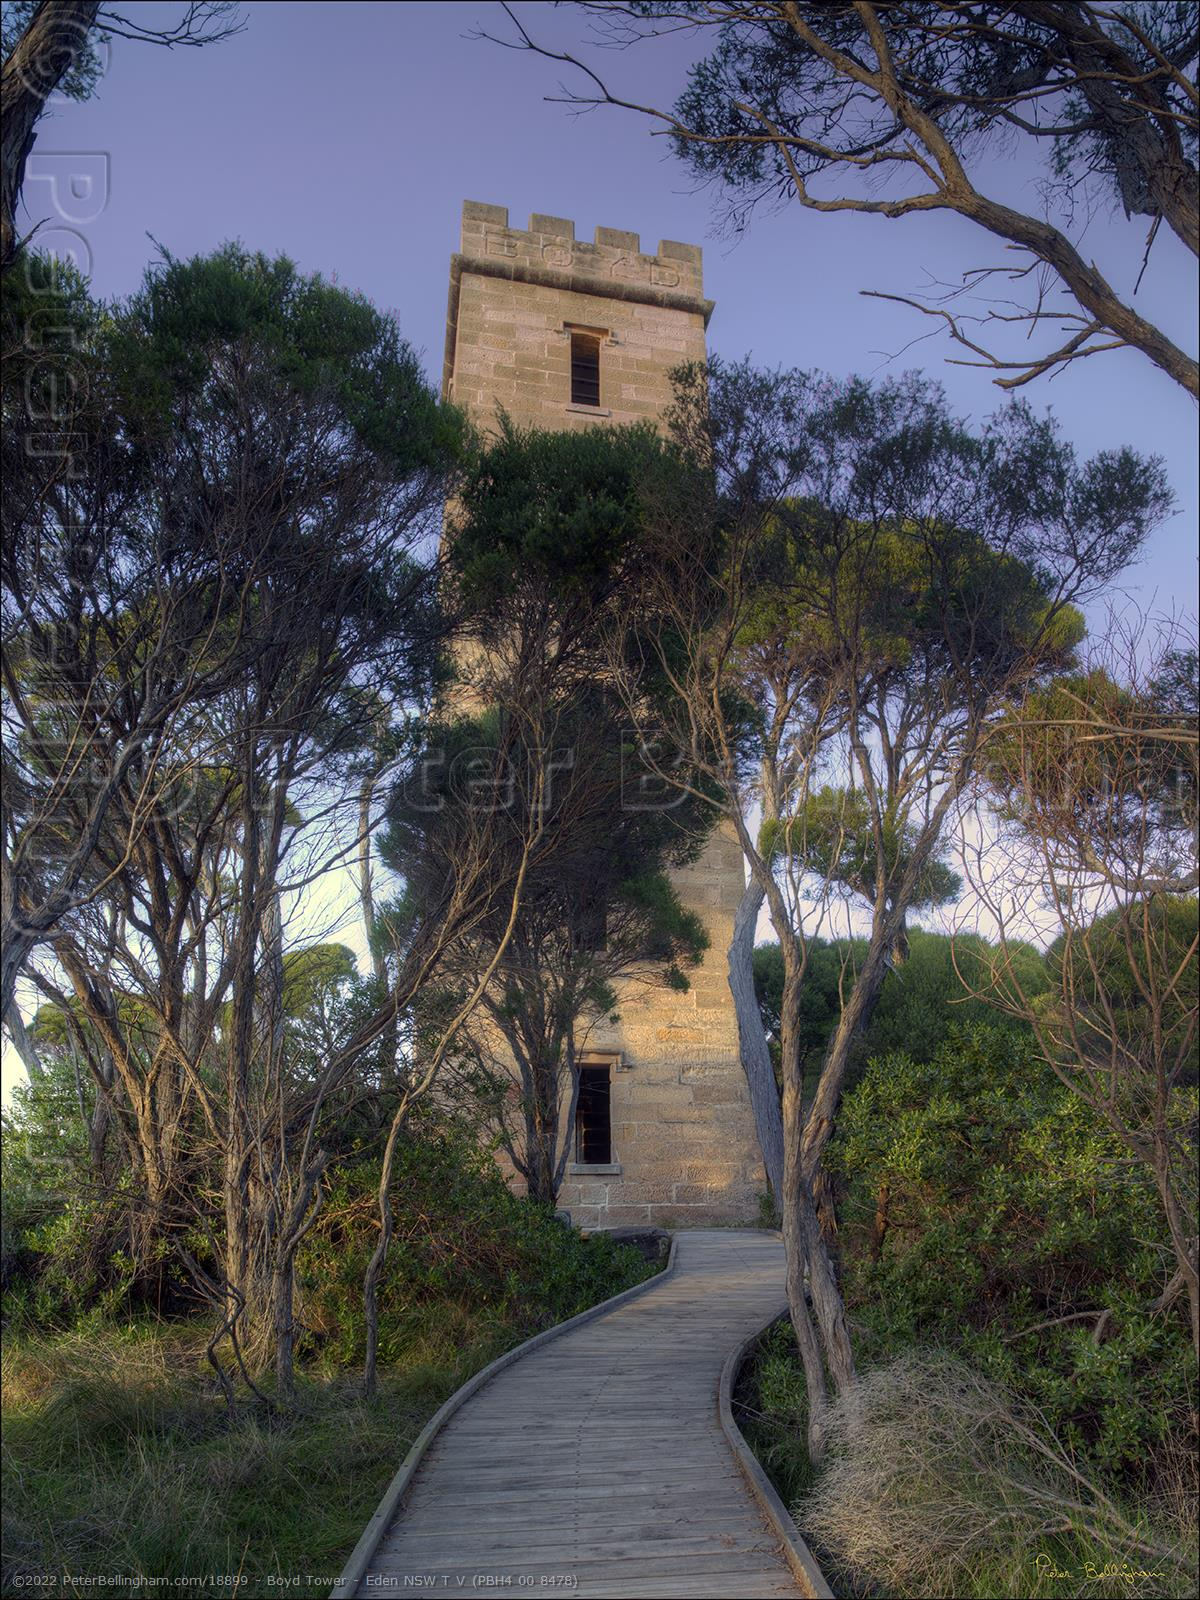 Peter Bellingham Photography Boyd Tower - Eden NSW T V (PBH4 00 8478)